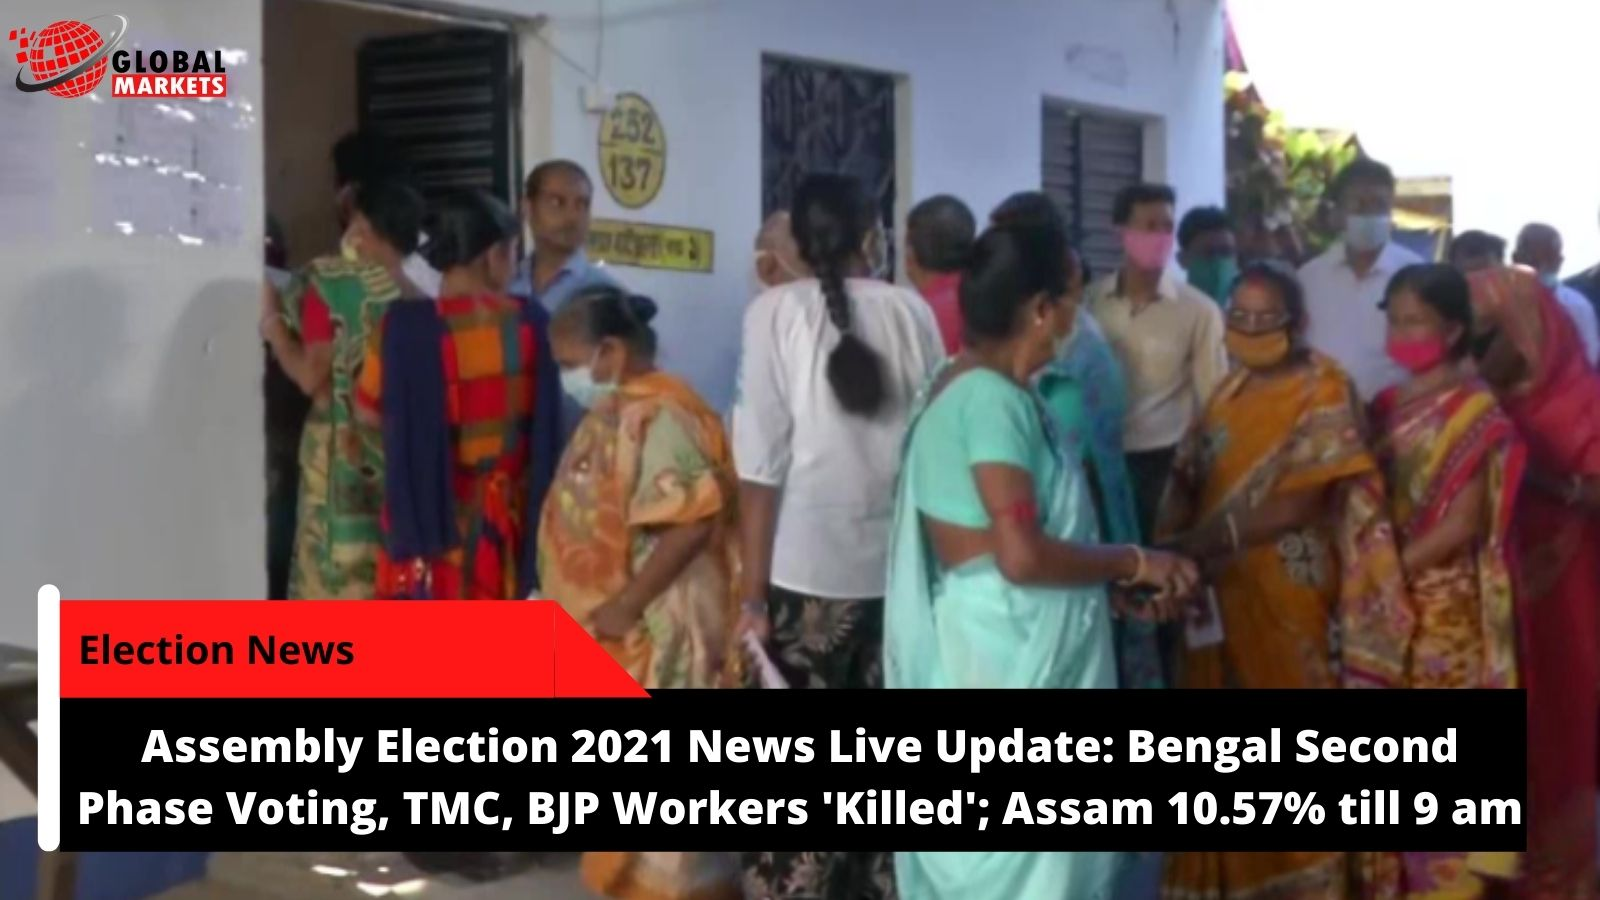 Assembly Election 2021 News Live Update: Bengal Second Phase Voting, TMC, BJP Workers 'Killed'